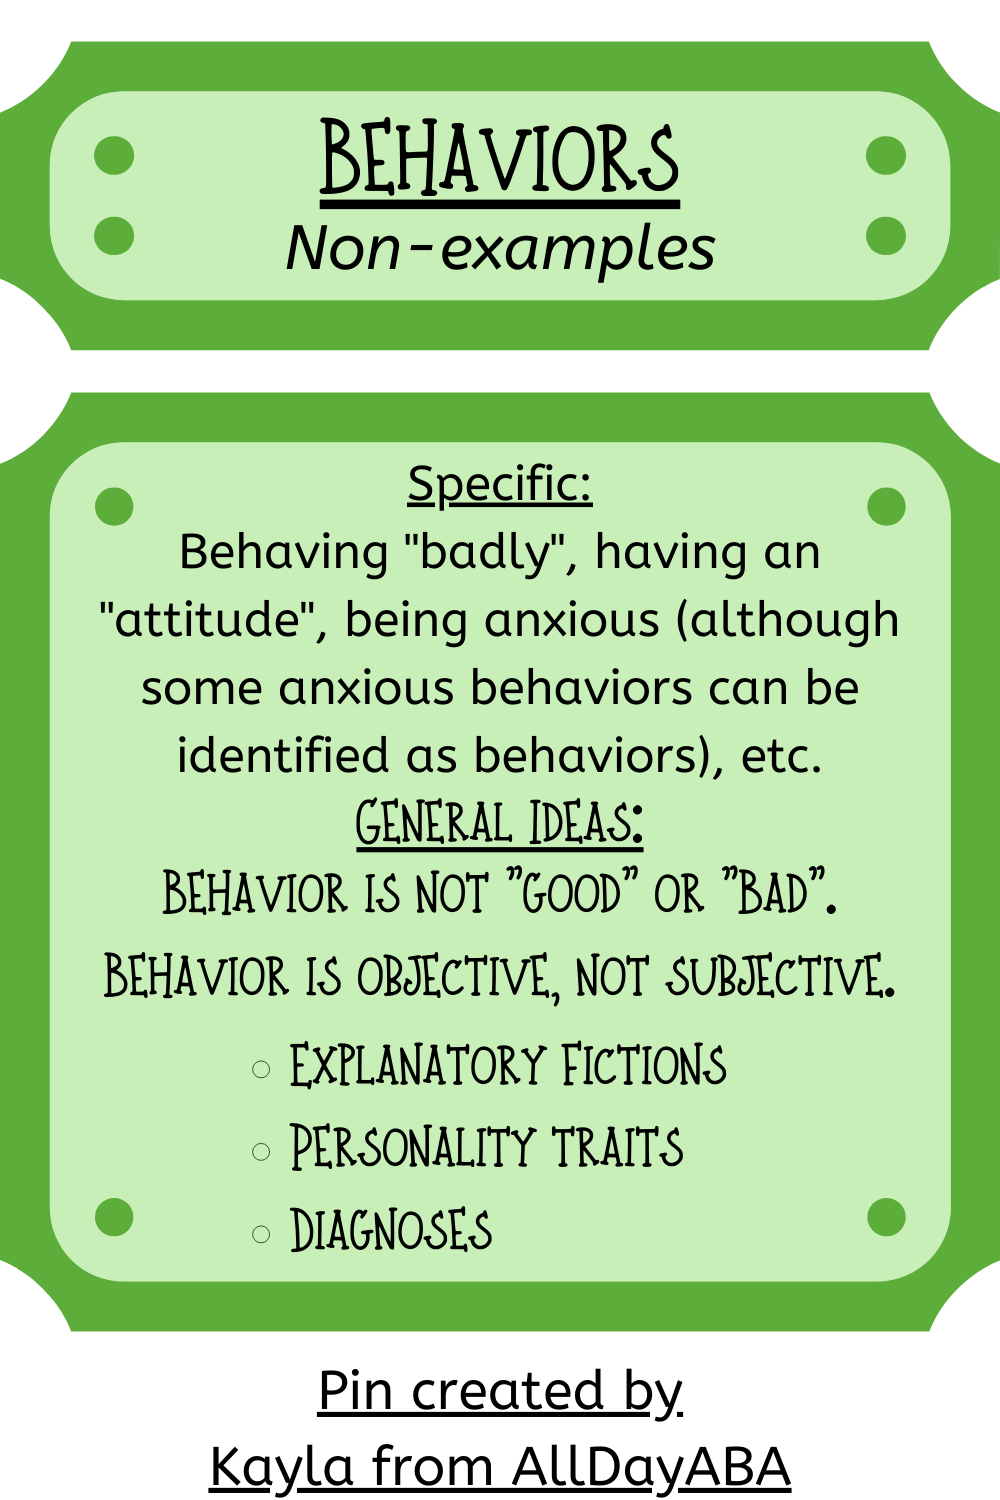 Behaviors Nonexamples Quick Glossary of ABA Terms